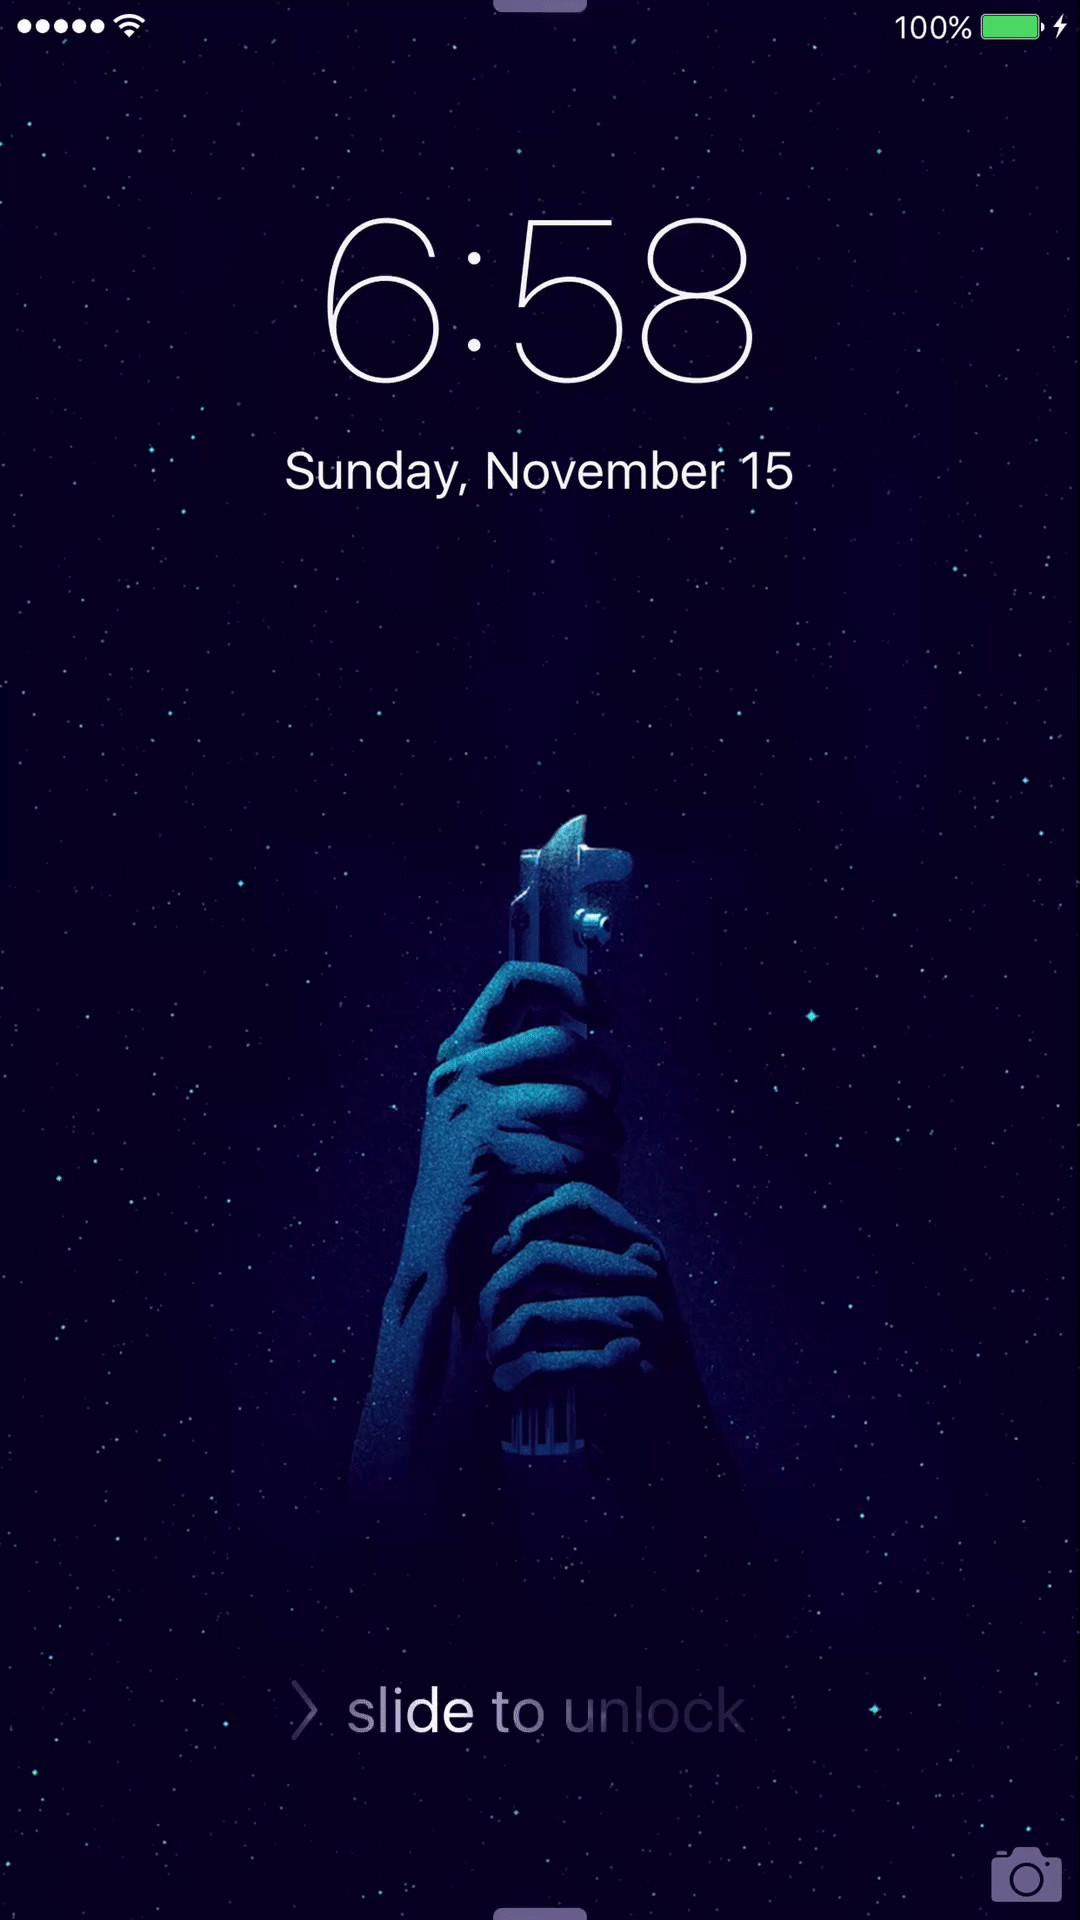 1080x1920 Animated GIF star wars, wallpaper, live, free download iphone, custom,